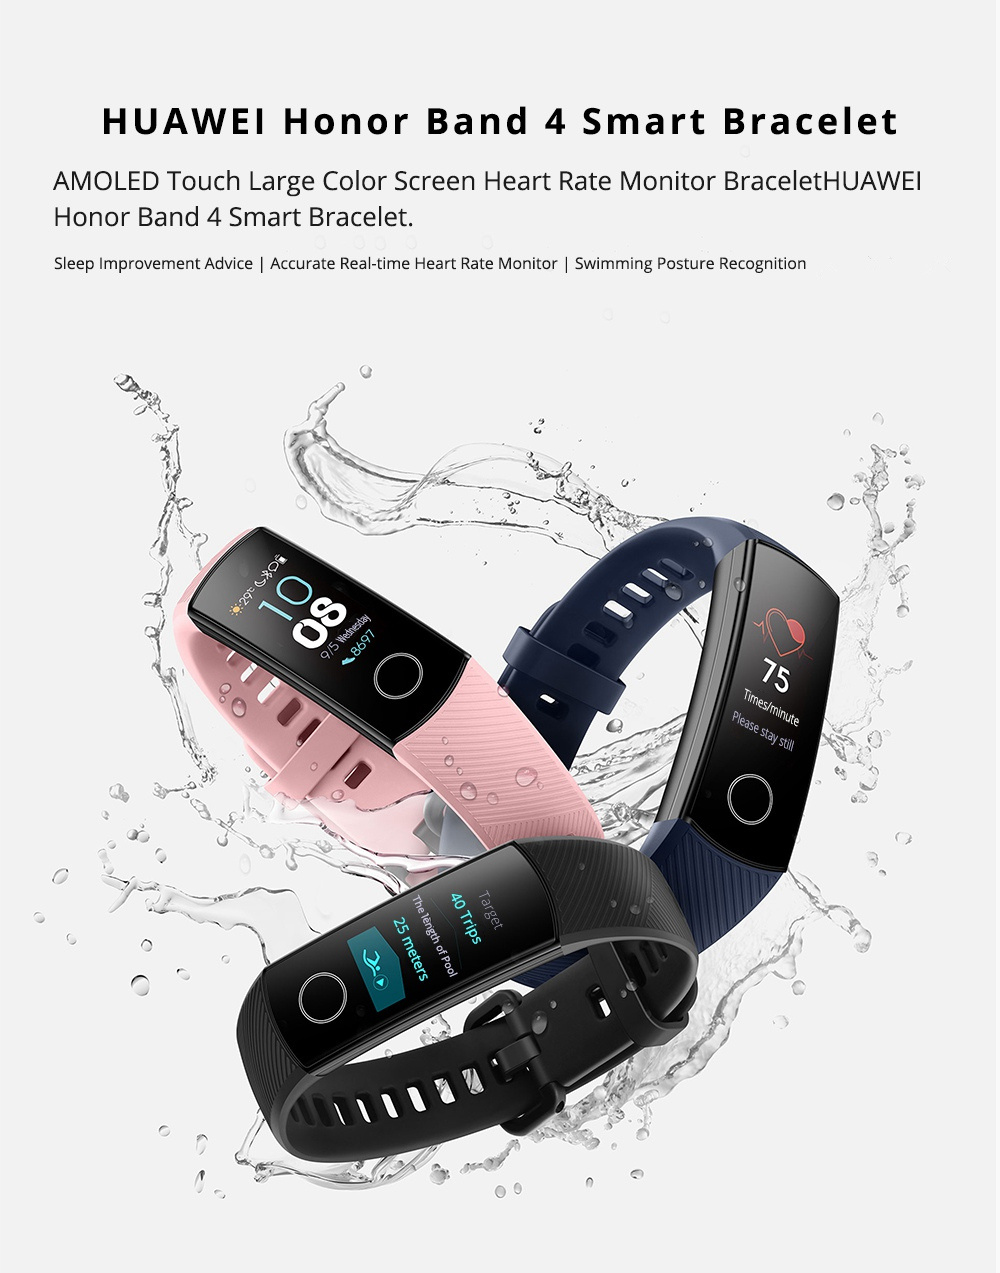 HUAWEI Honor Band 4 1